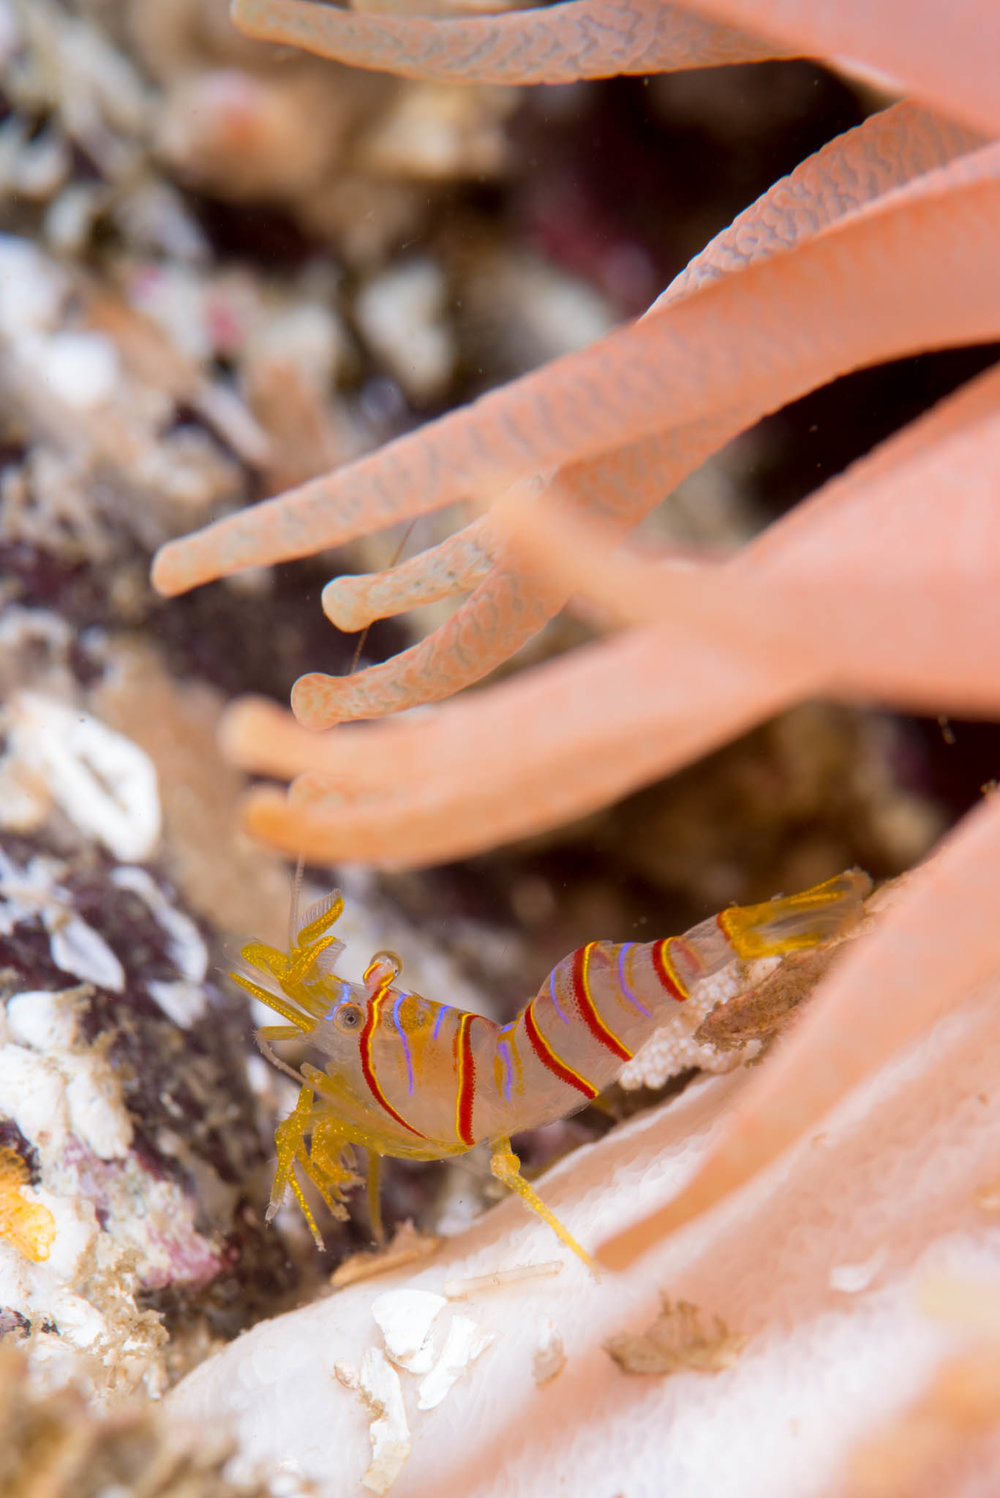 Candy Stripe Shrimp